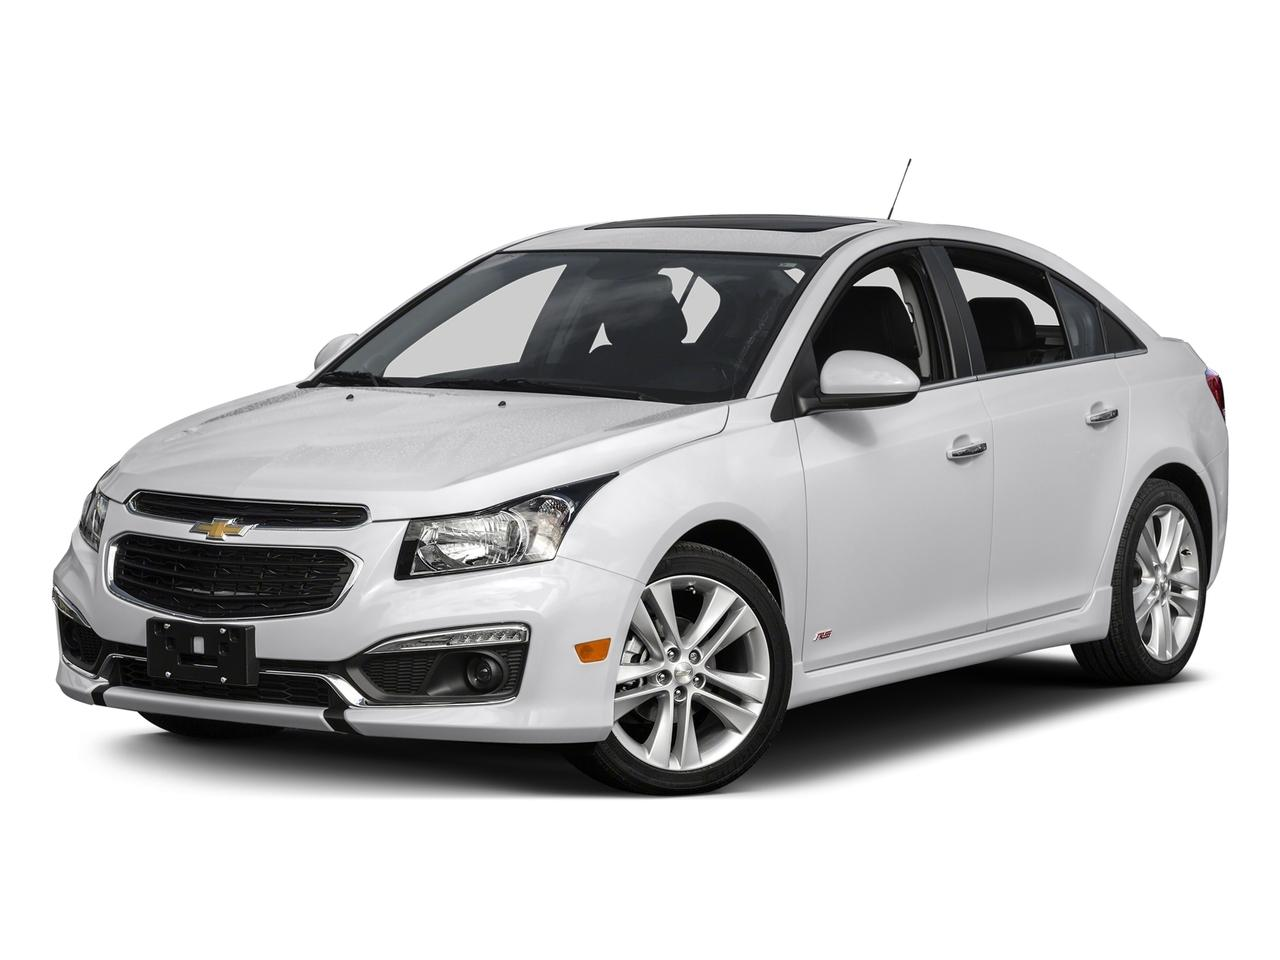 2015 Chevrolet Cruze Vehicle Photo in Greeley, CO 80634